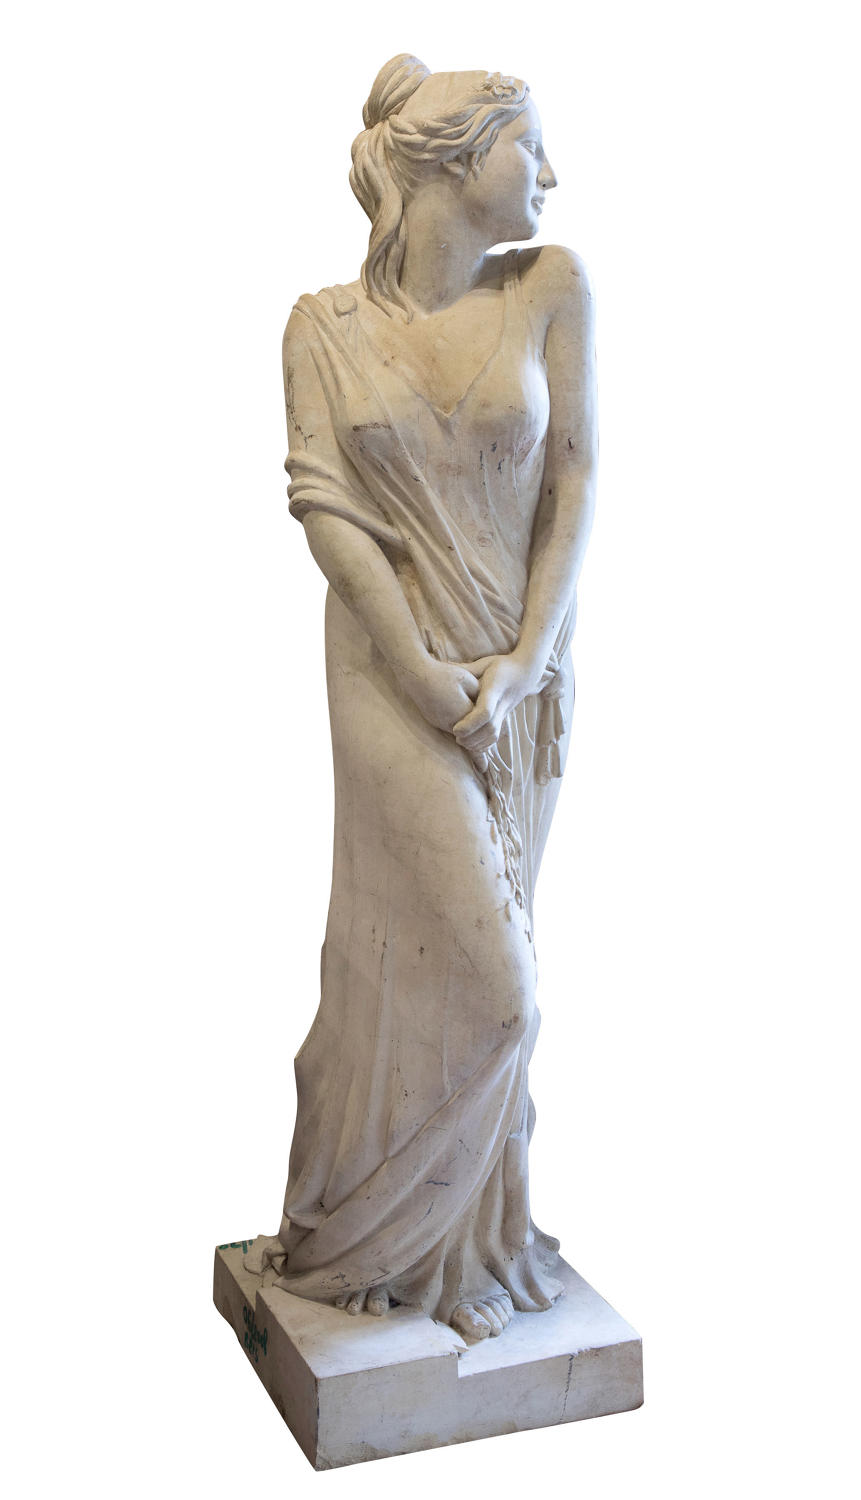 20thC Coadstone figure of a maiden depicting spring